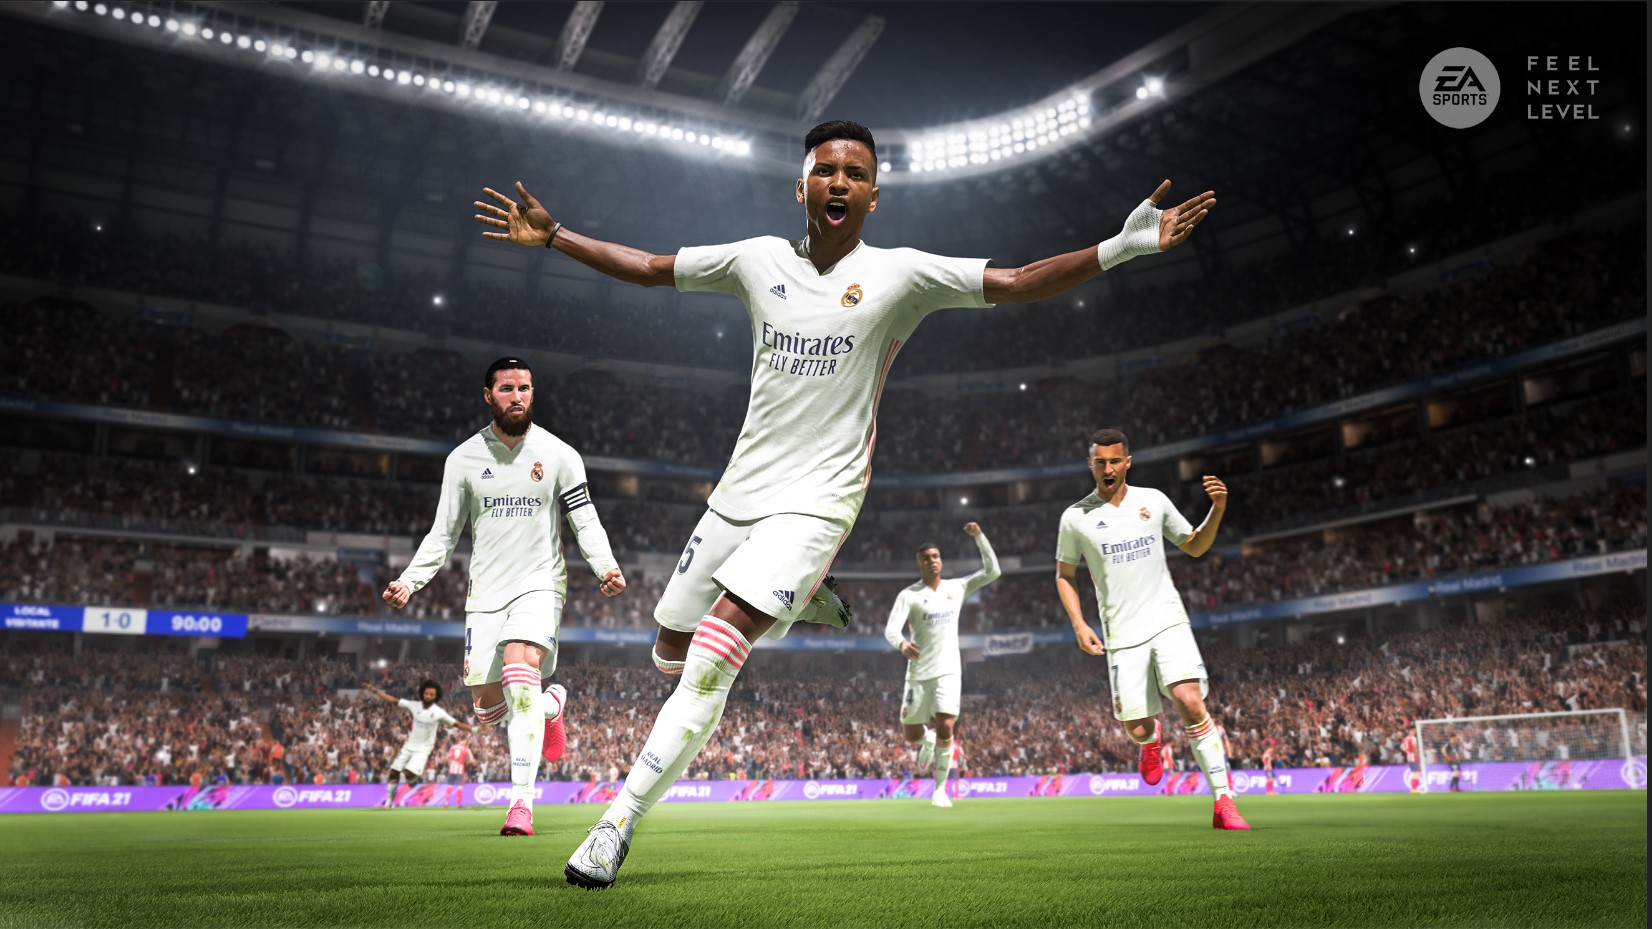 FIFA 21 and GTA 5 were the most downloaded games on PlayStation in February - VG247